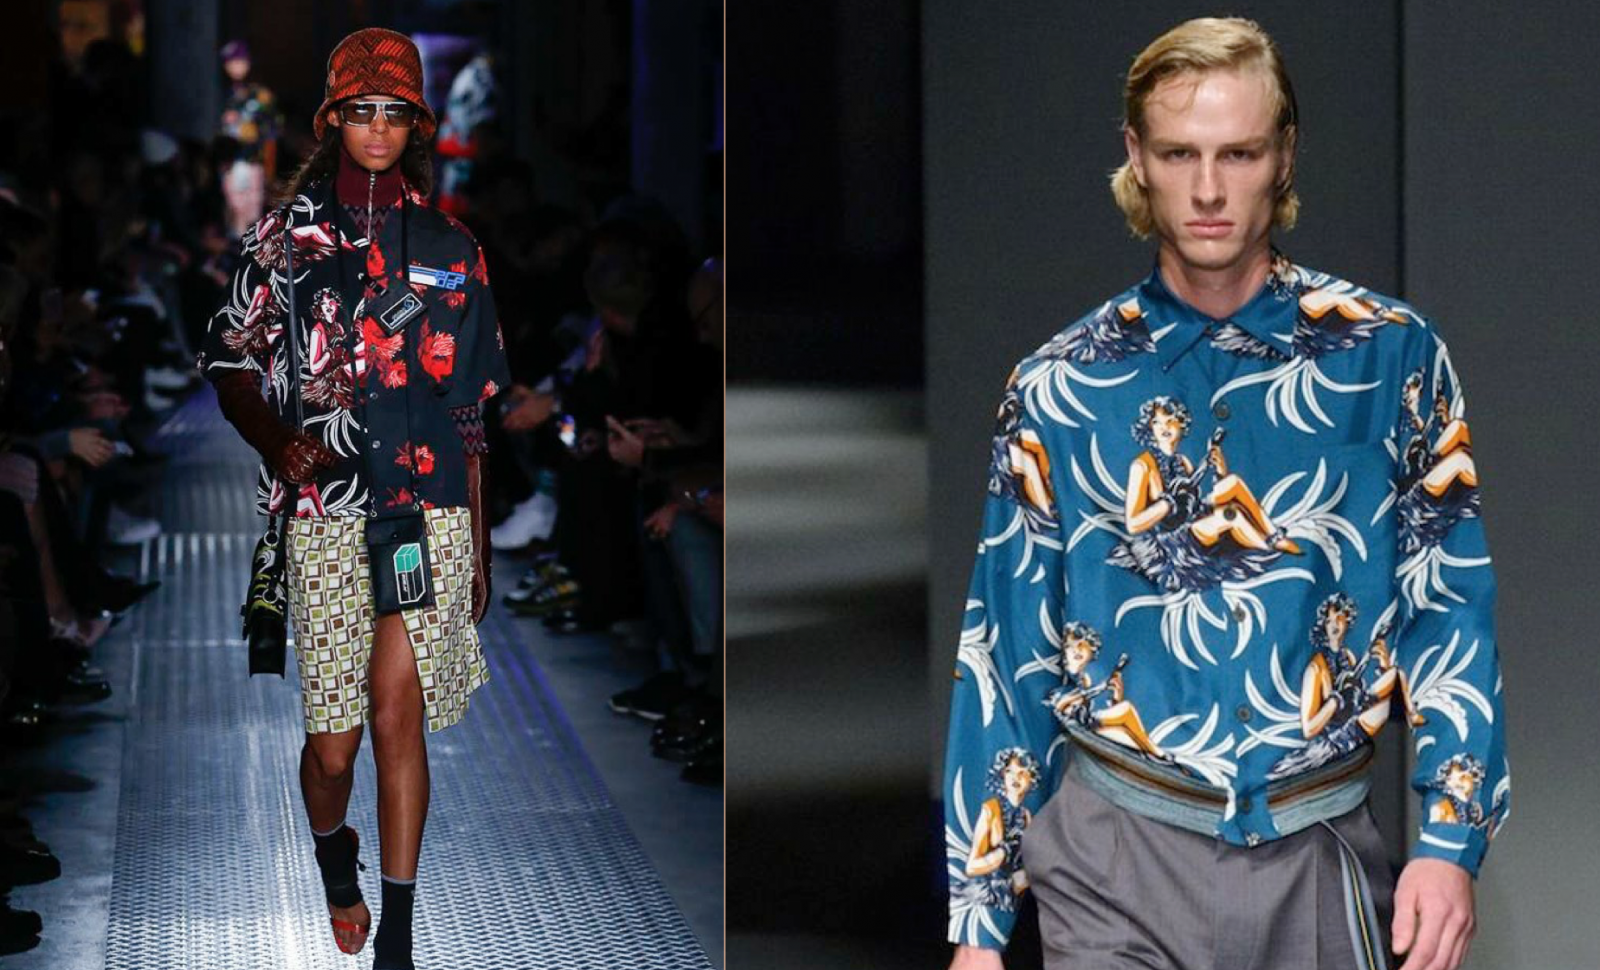 Prada F/W 2018 hula girls (left) & Prada S/S 2014 mens (right)